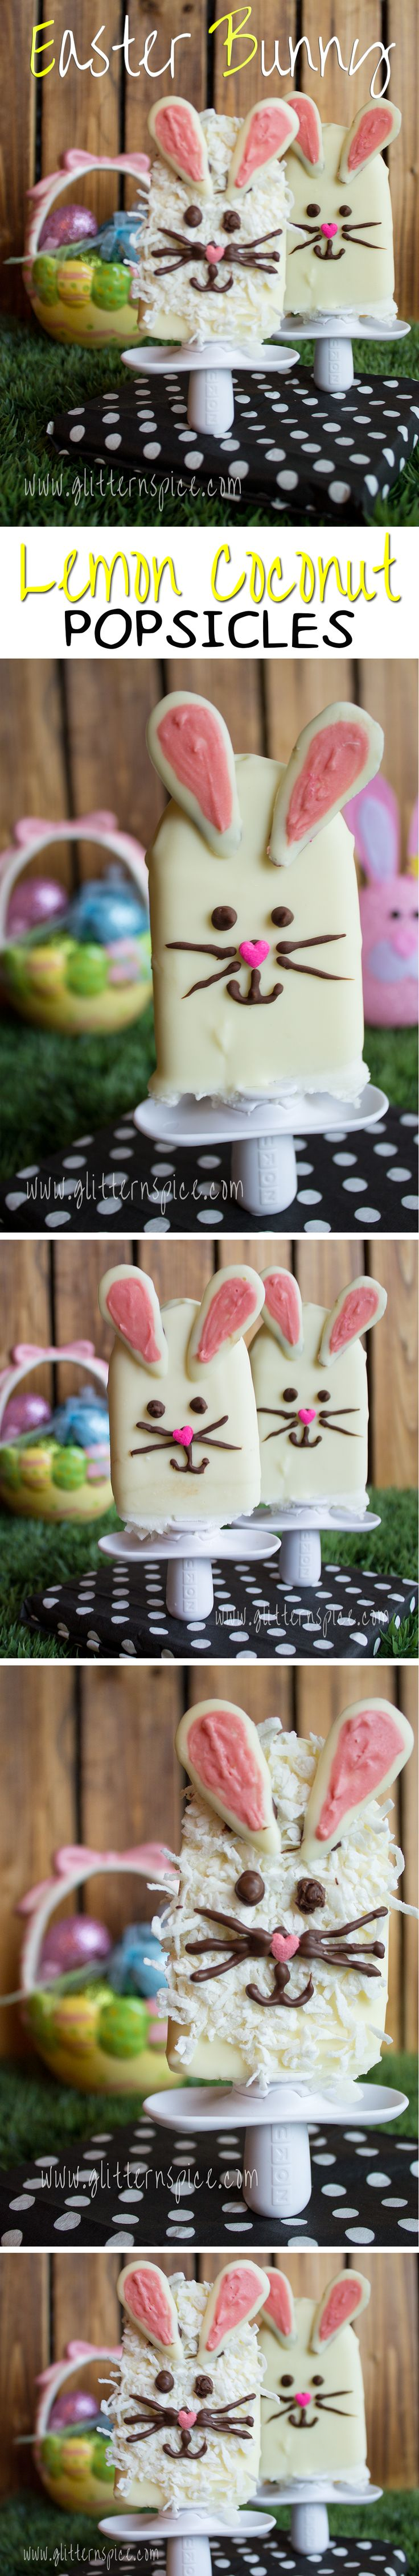 These Easter Bunny Lemon Coconut Popsicles are made with coconut milk, coconut, lemon juice and dipped into a creamy white chocolate magic shell coating - YUM!